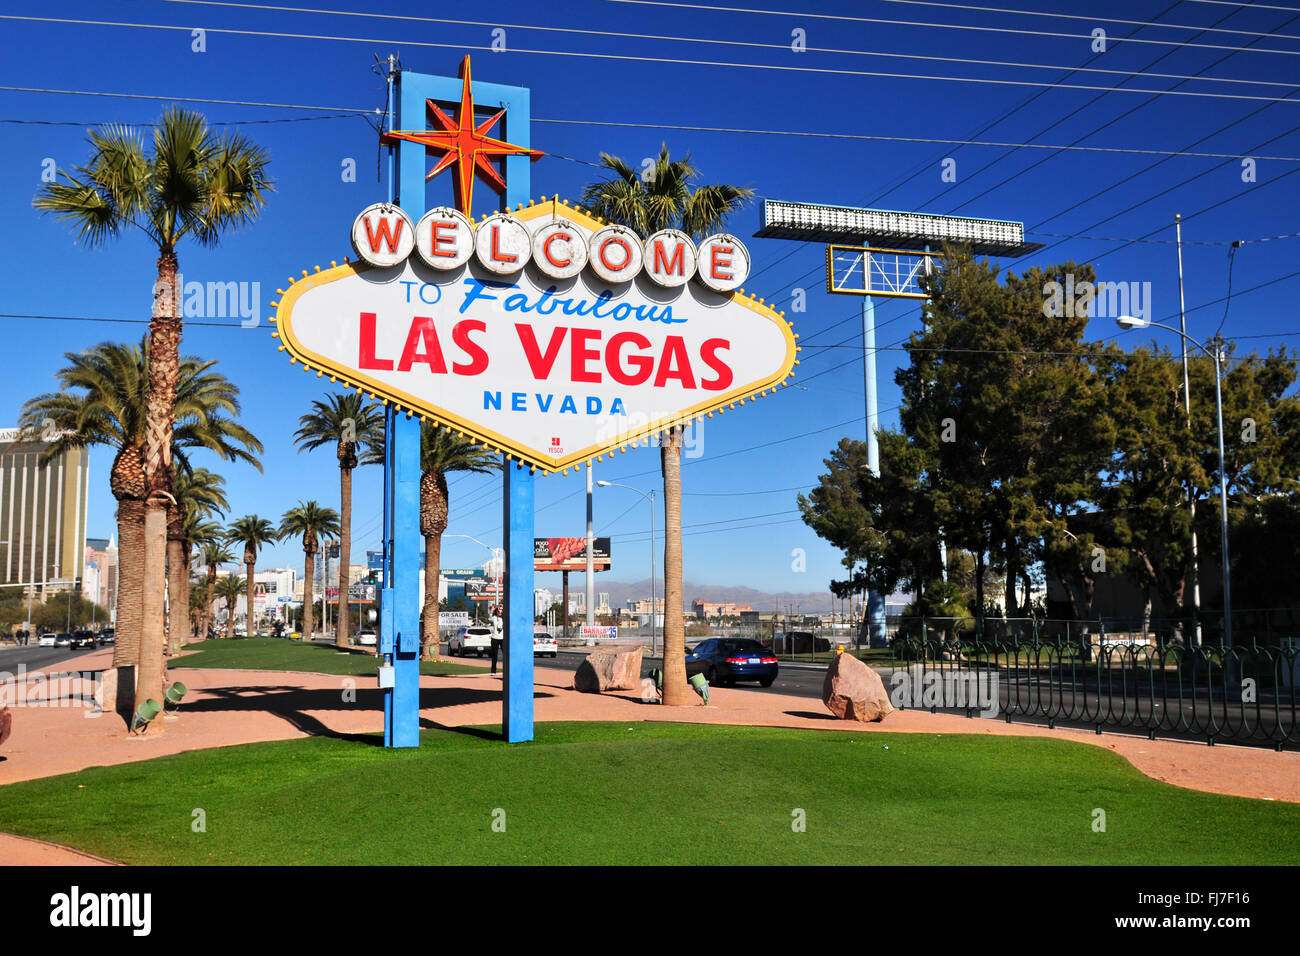 The famous sign (billboard) on Las Vegas Strip, Las Vegas, Nevada, USA - Stock Image